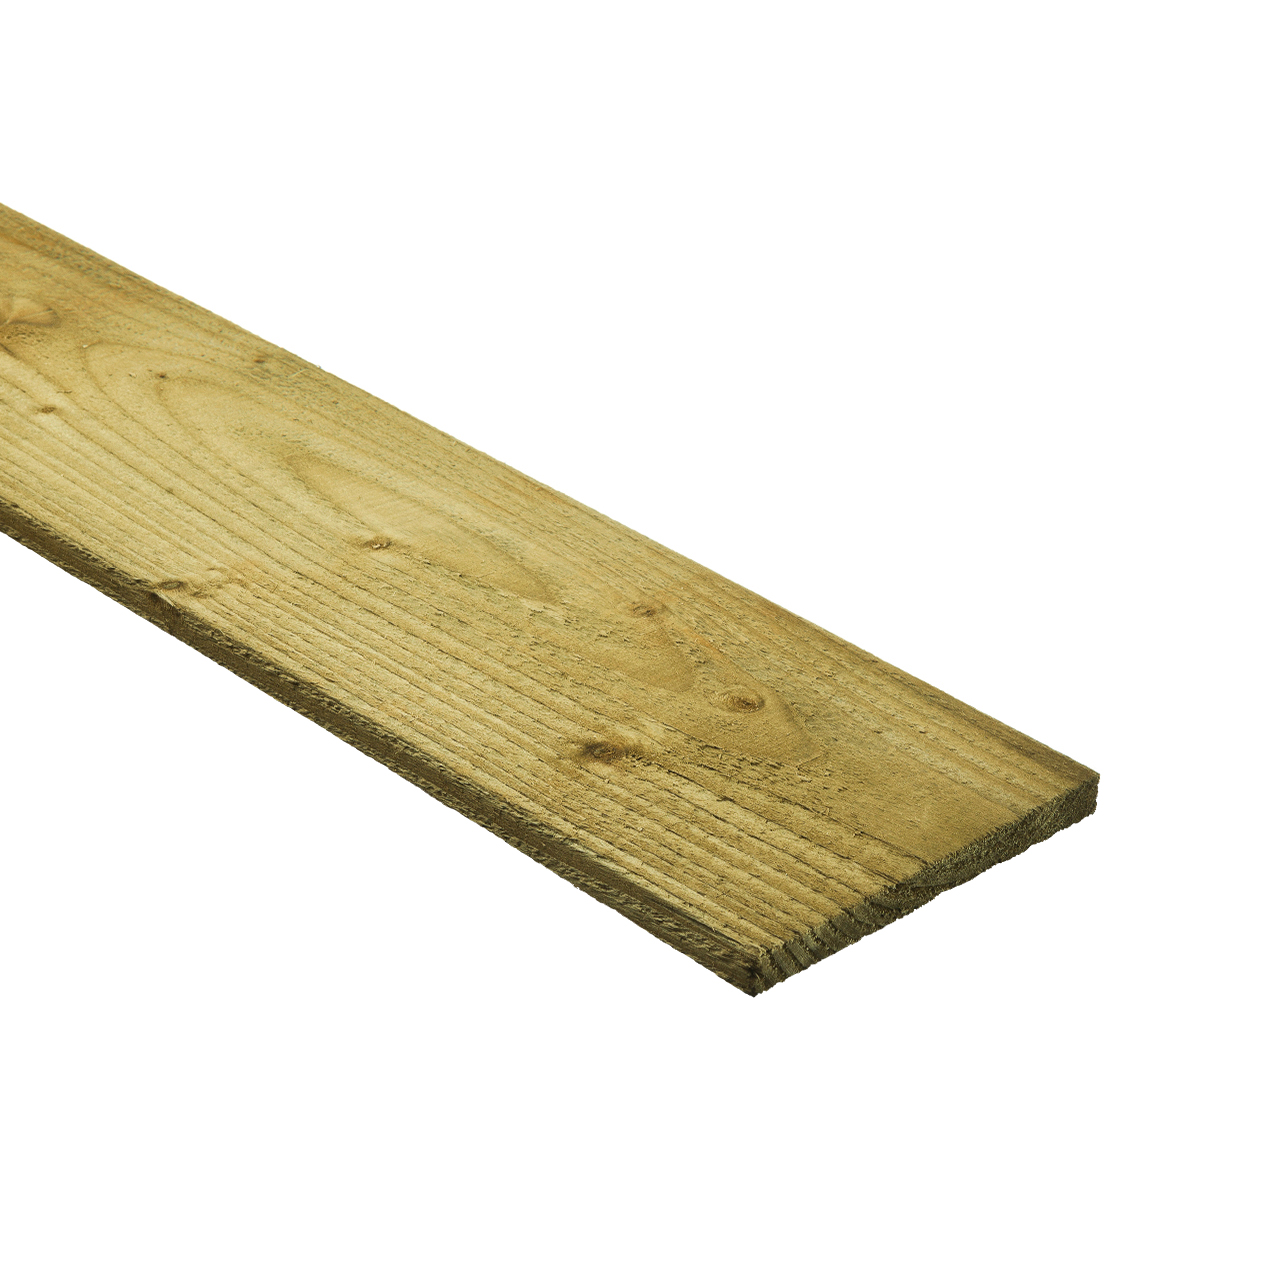 19mm x 150mm Sawn Carcassing Treated 1.8m Length image 0